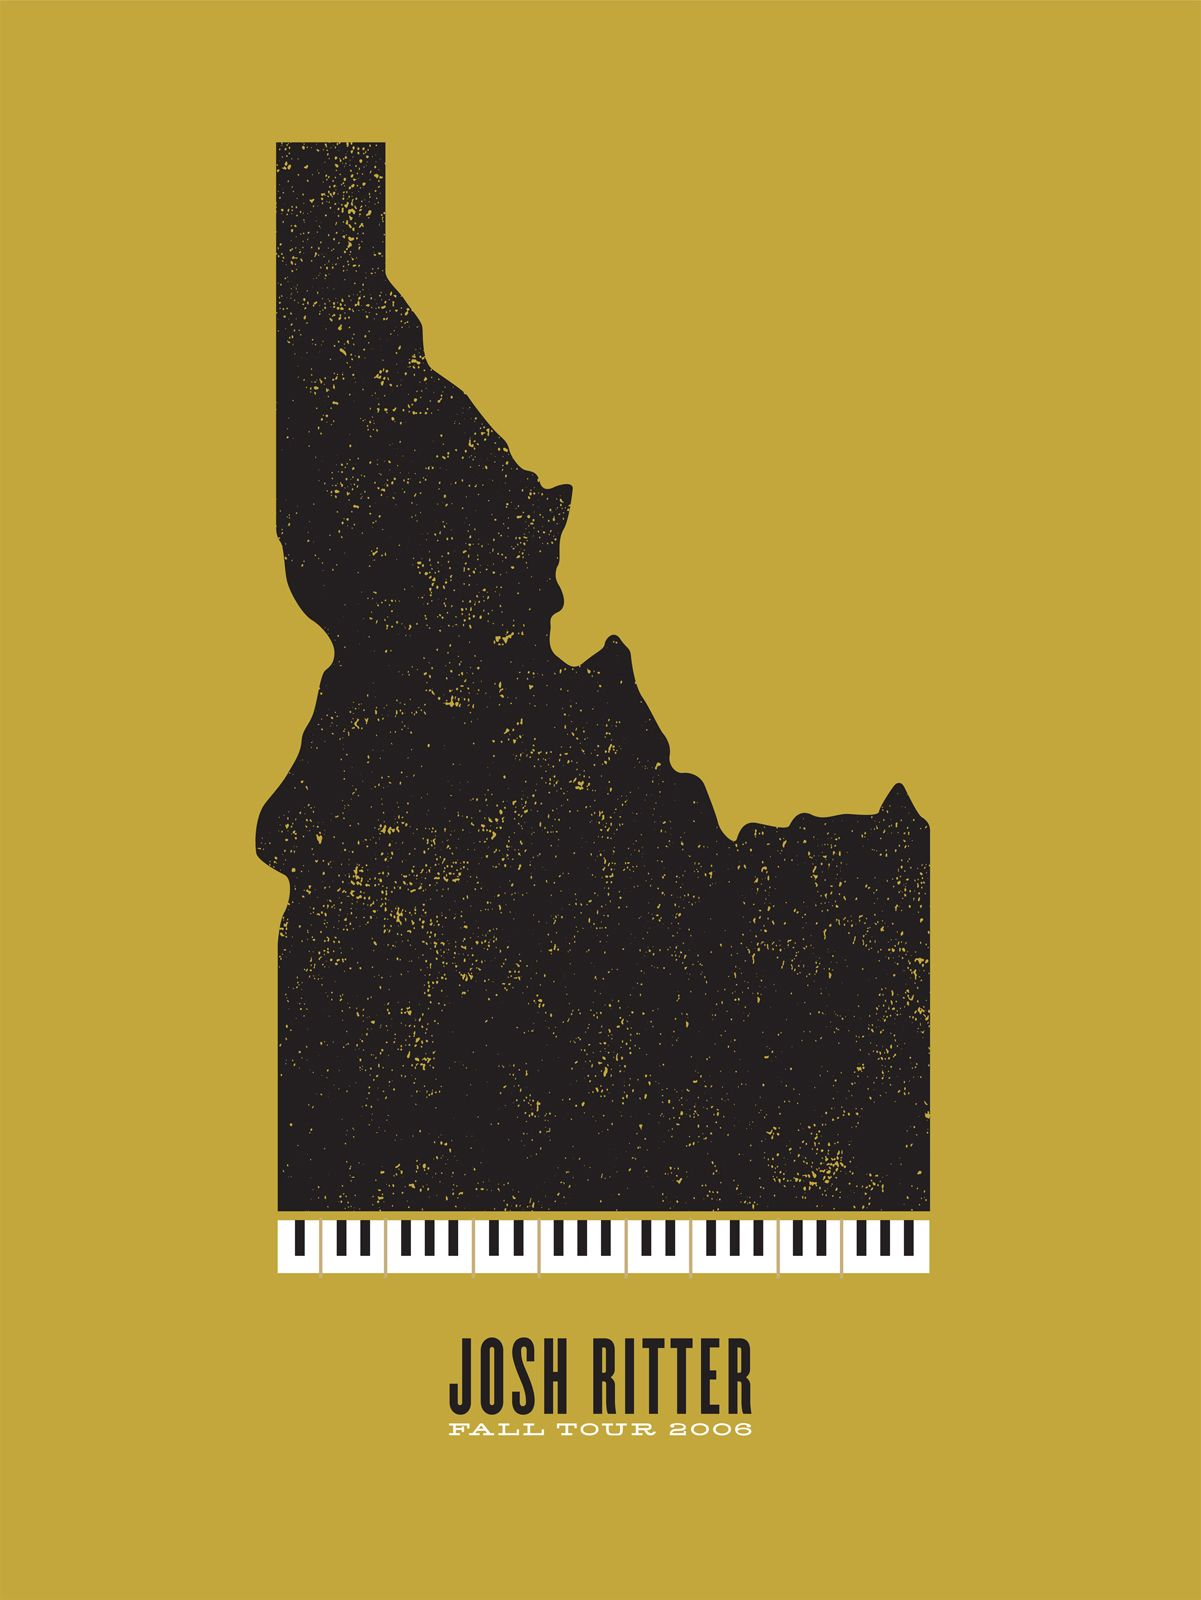 The Small Stakes Music Posters By Miyoko Ohtake Music Poster Design Typography Poster Design Poster Design